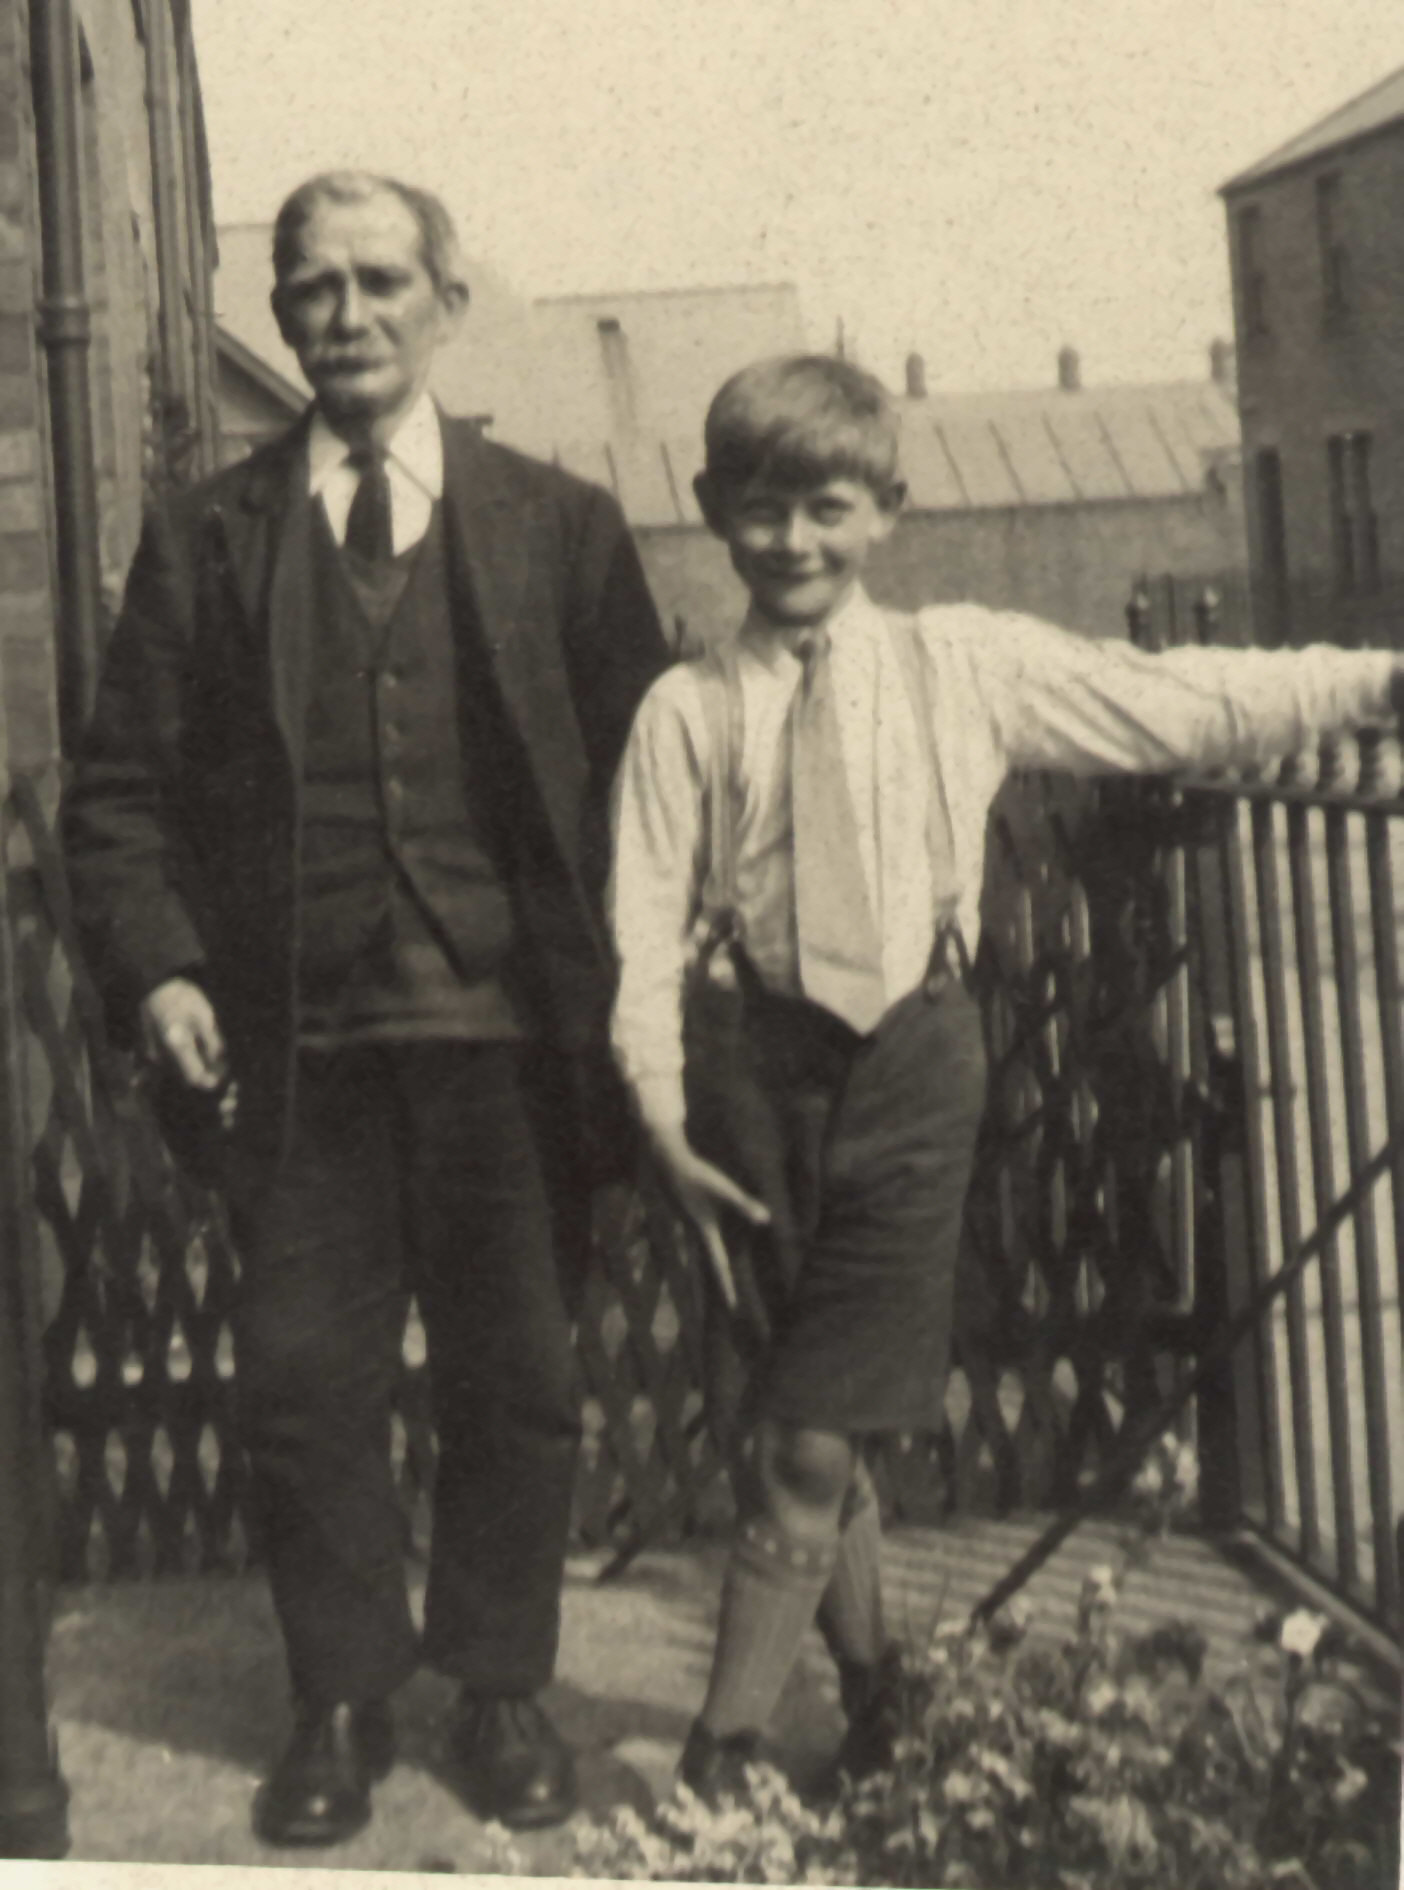 George Duddridge with George Weallans (c1930)